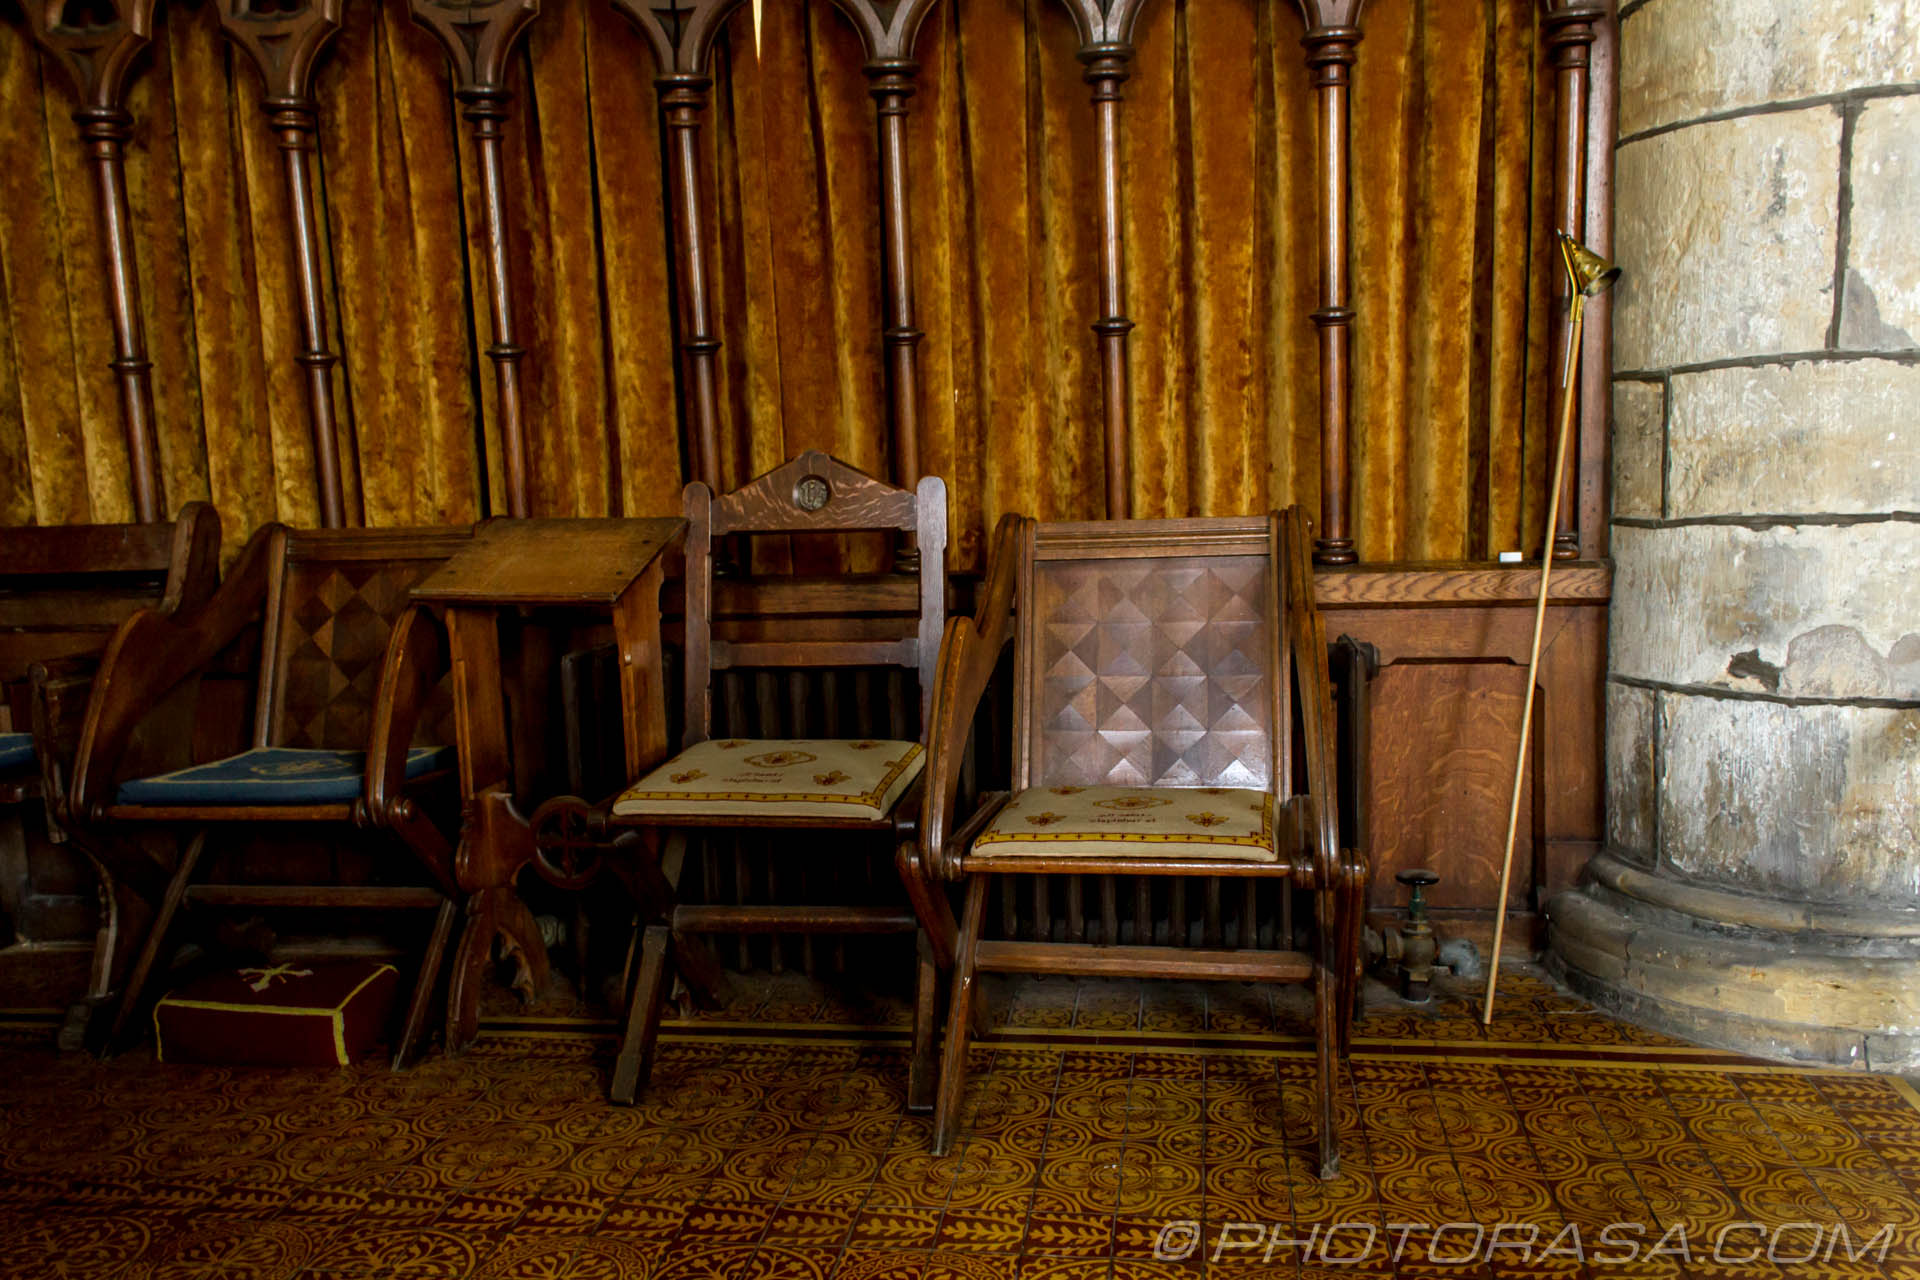 http://photorasa.com/saints-church-staplehurst-kent/wooden-chairs-and-gold-candle-snuffer/